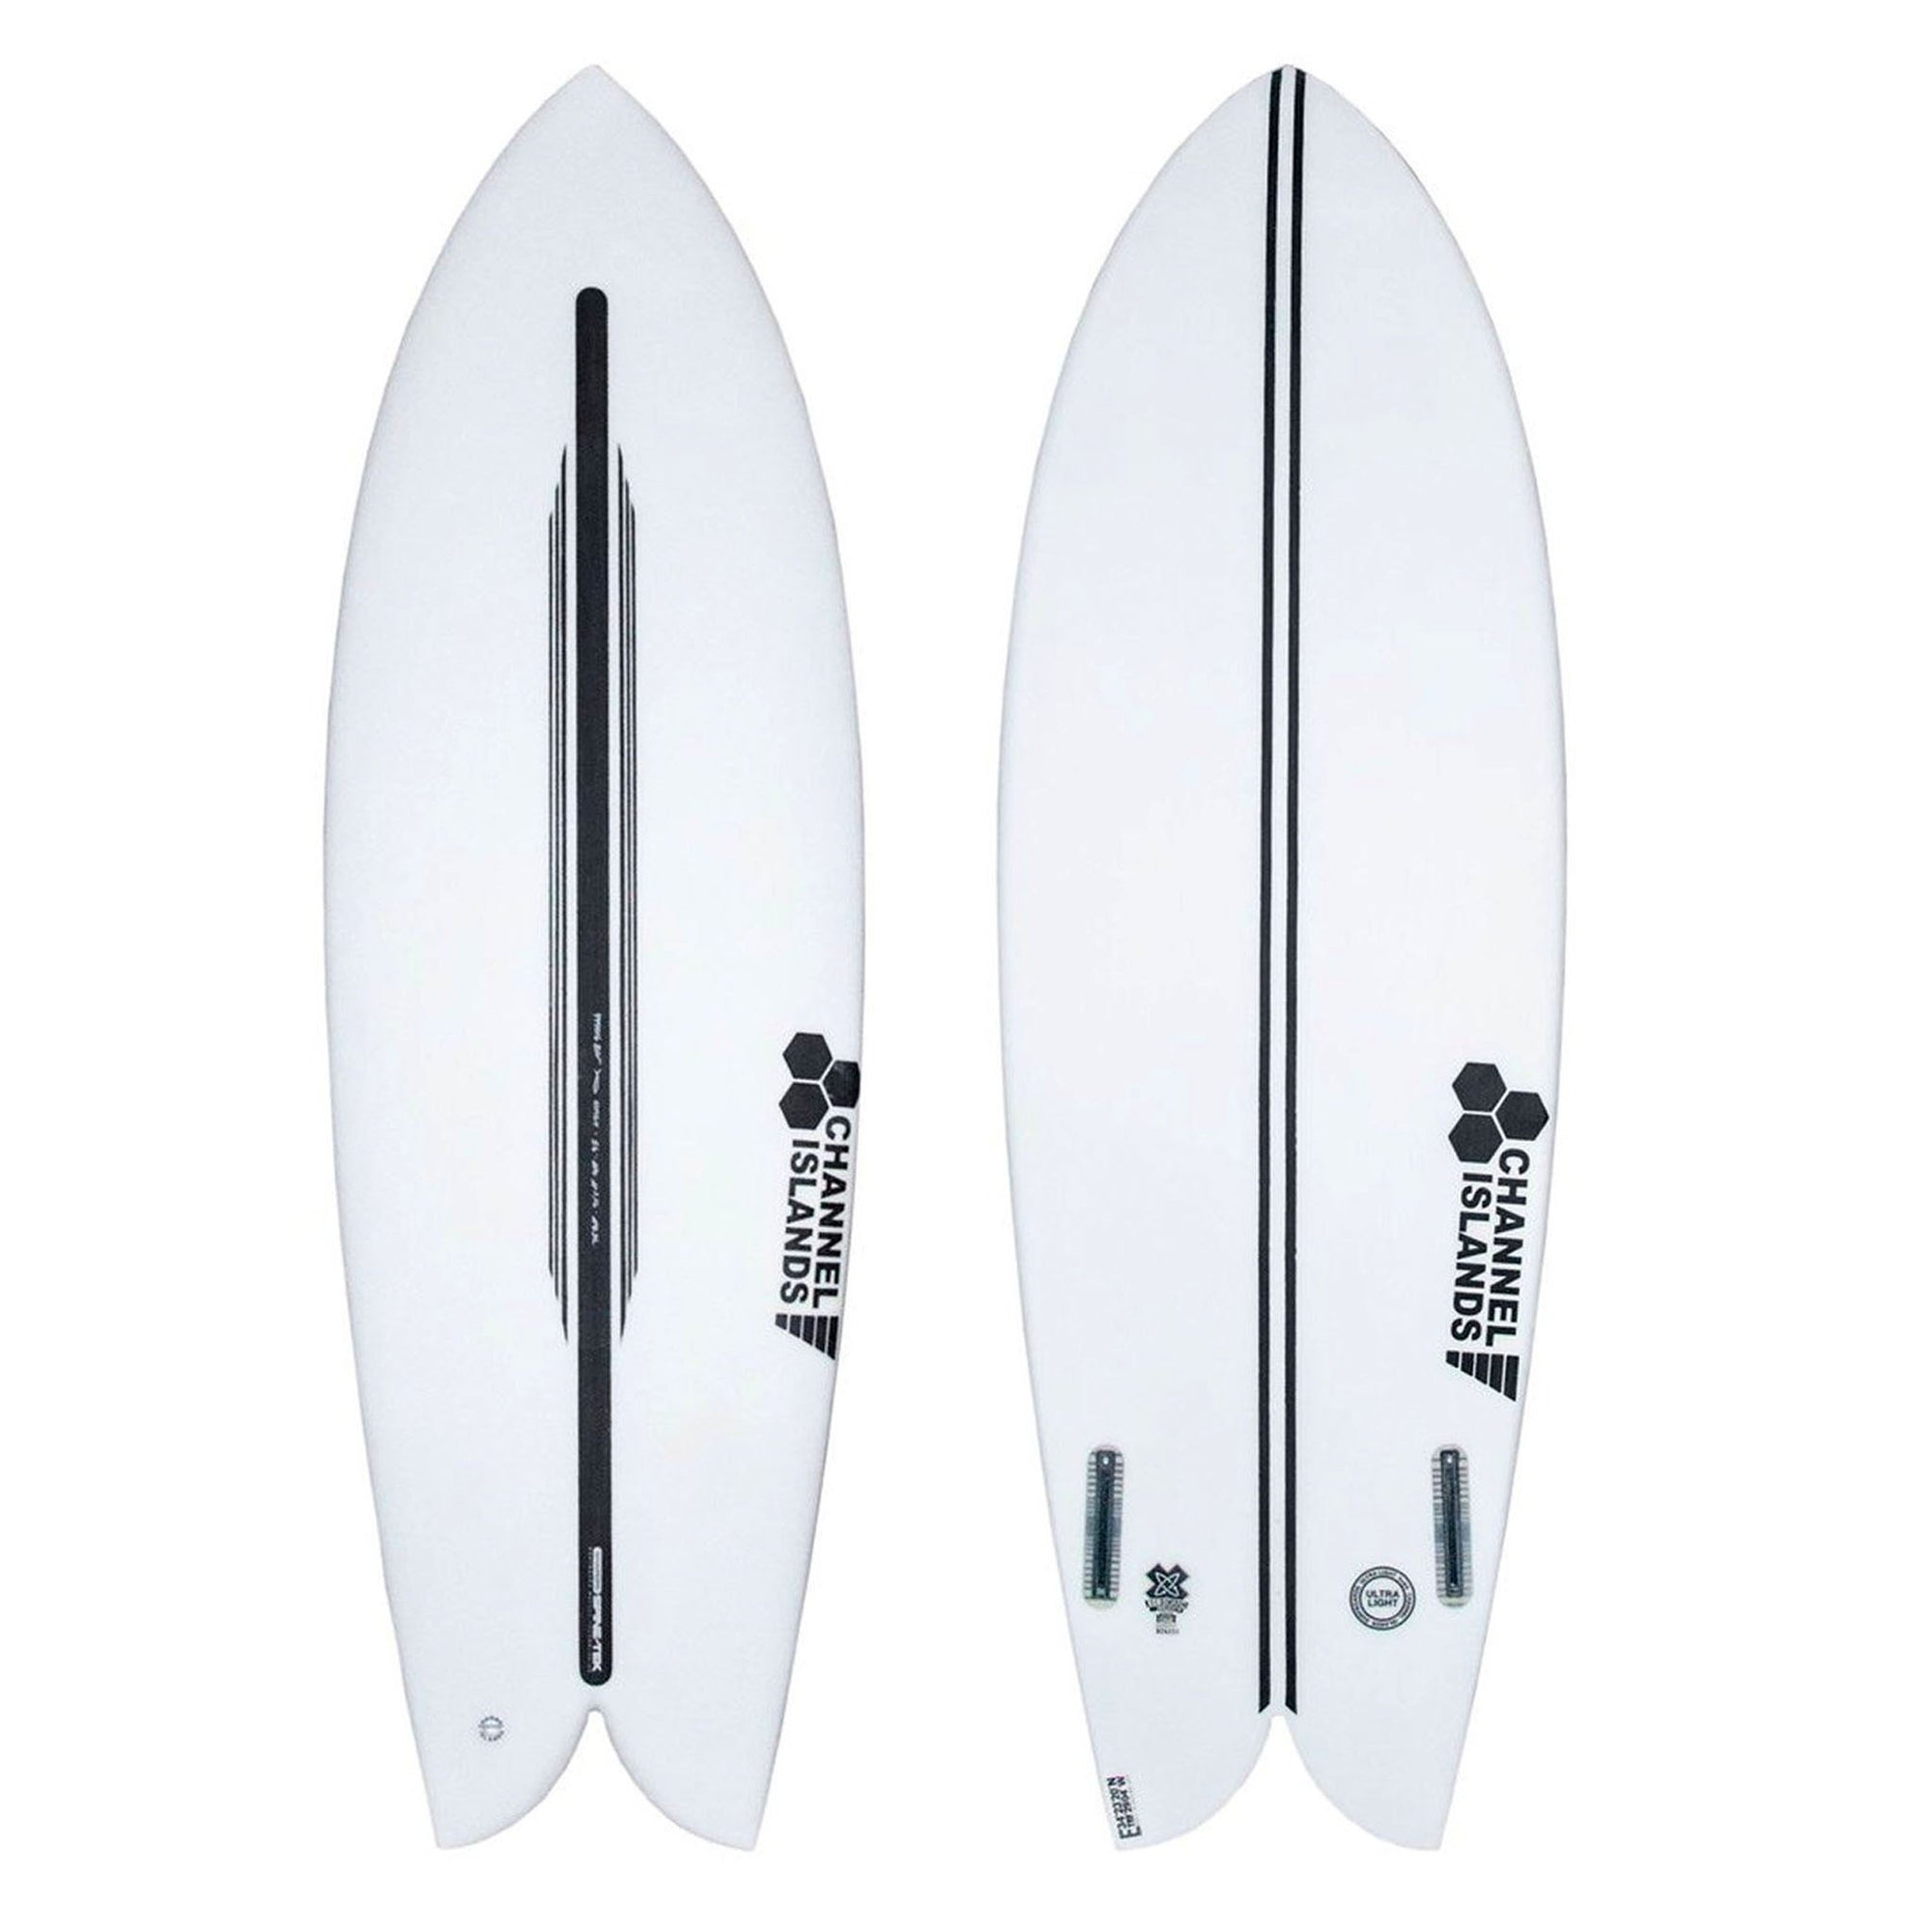 Channel Islands Fish Spine-Tek Surfboard